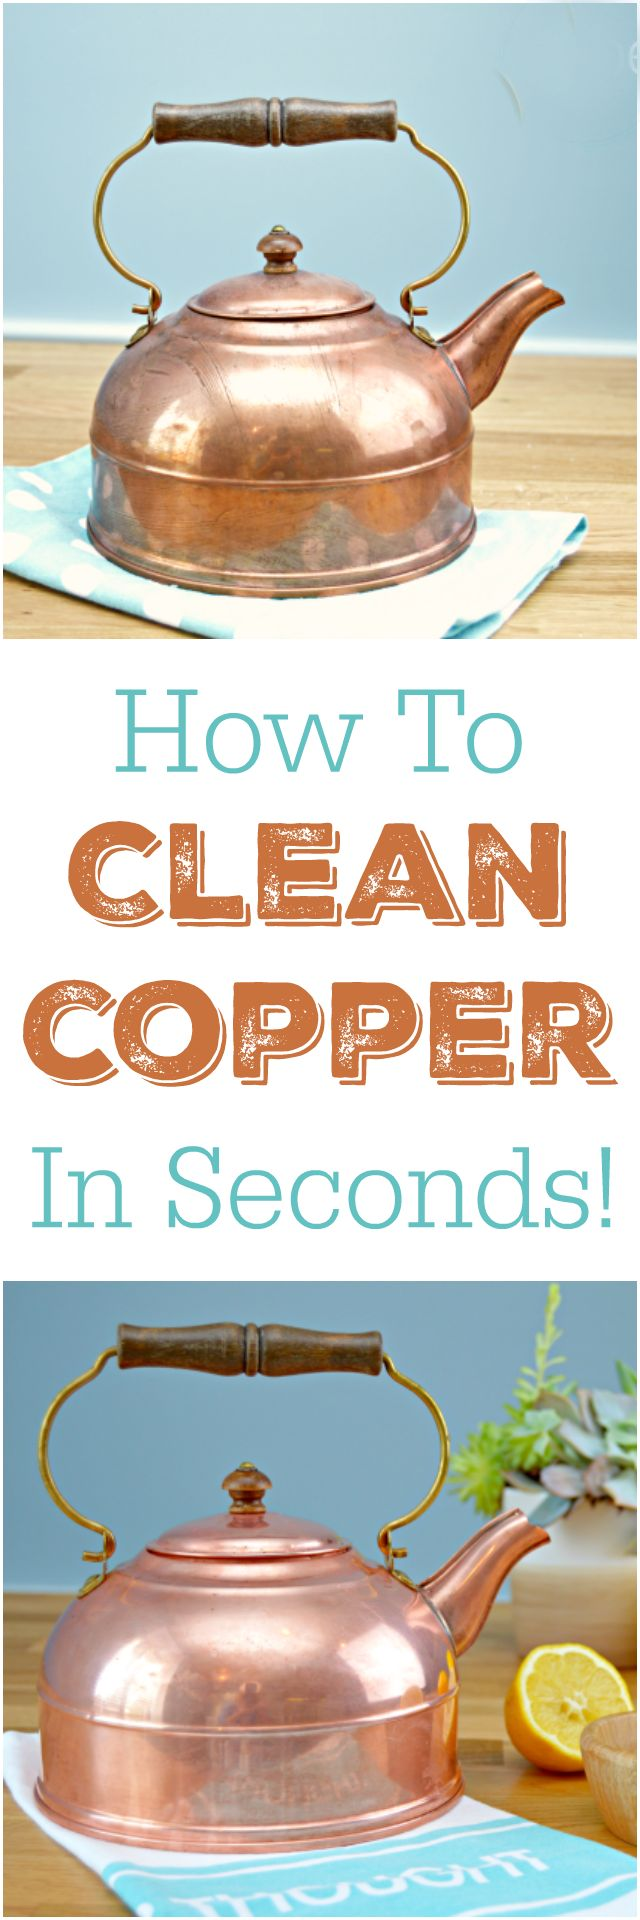 How To Clean Copper In Seconds